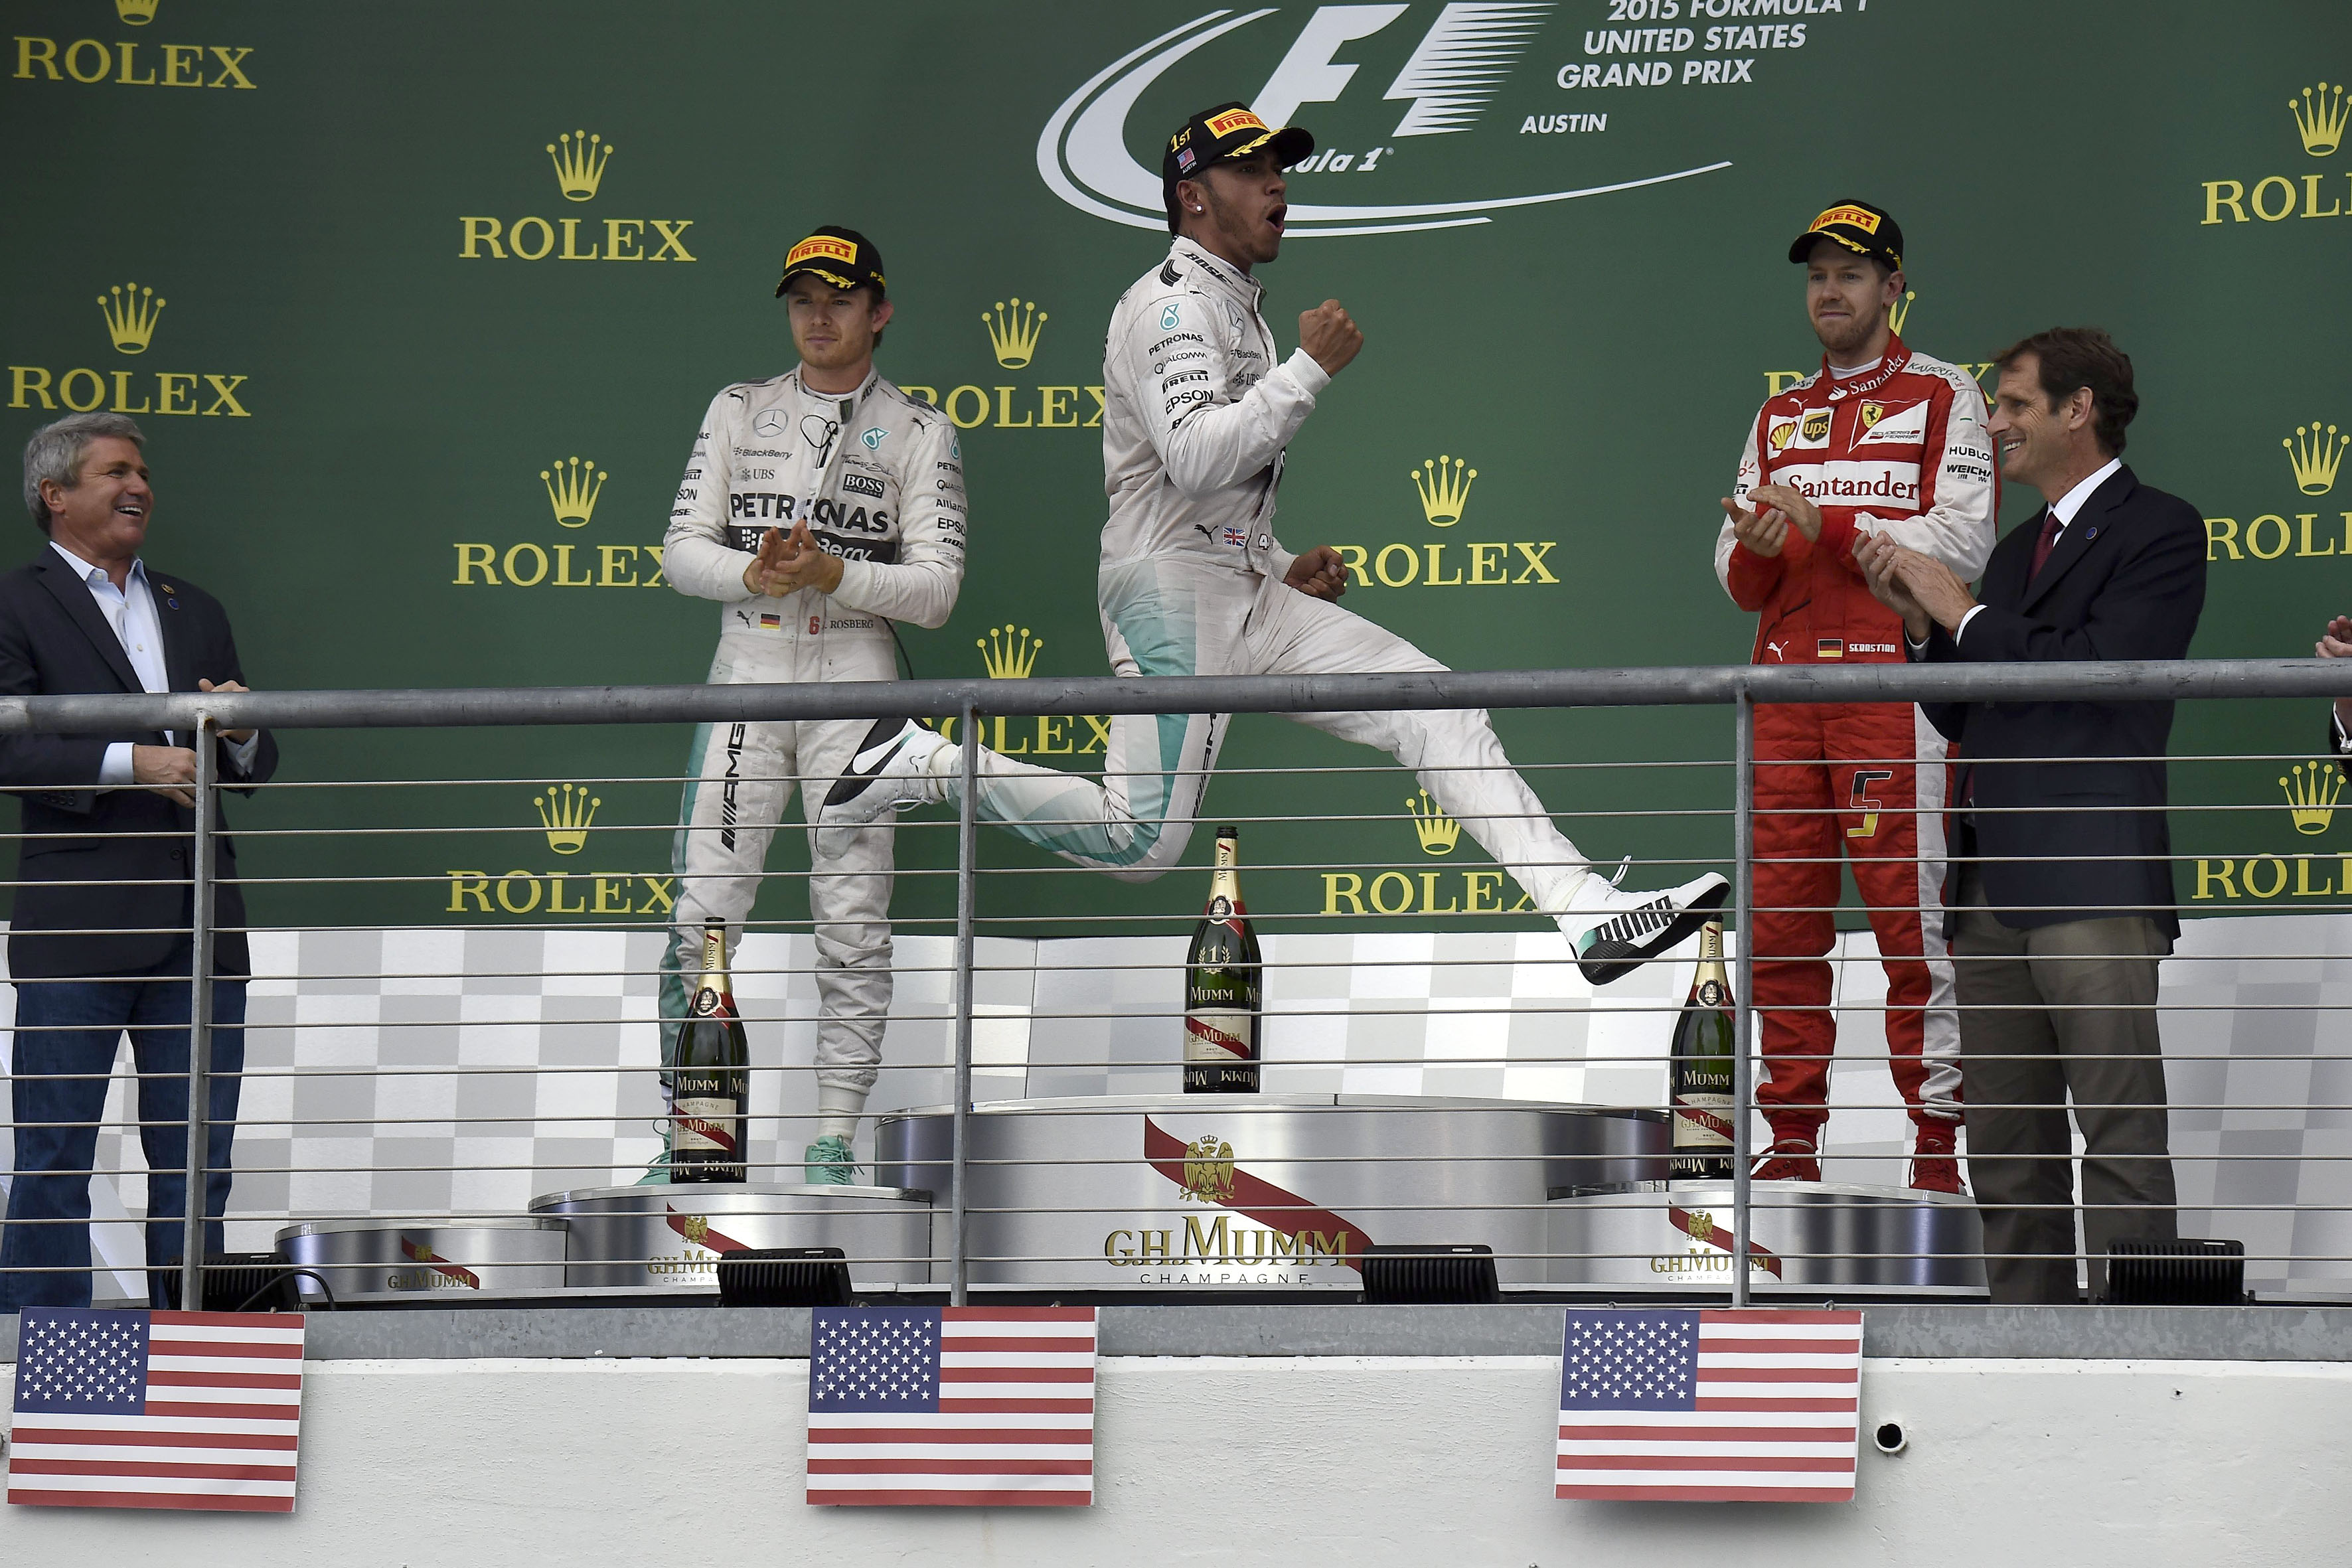 USA: Hamilton con una strategia perfetta